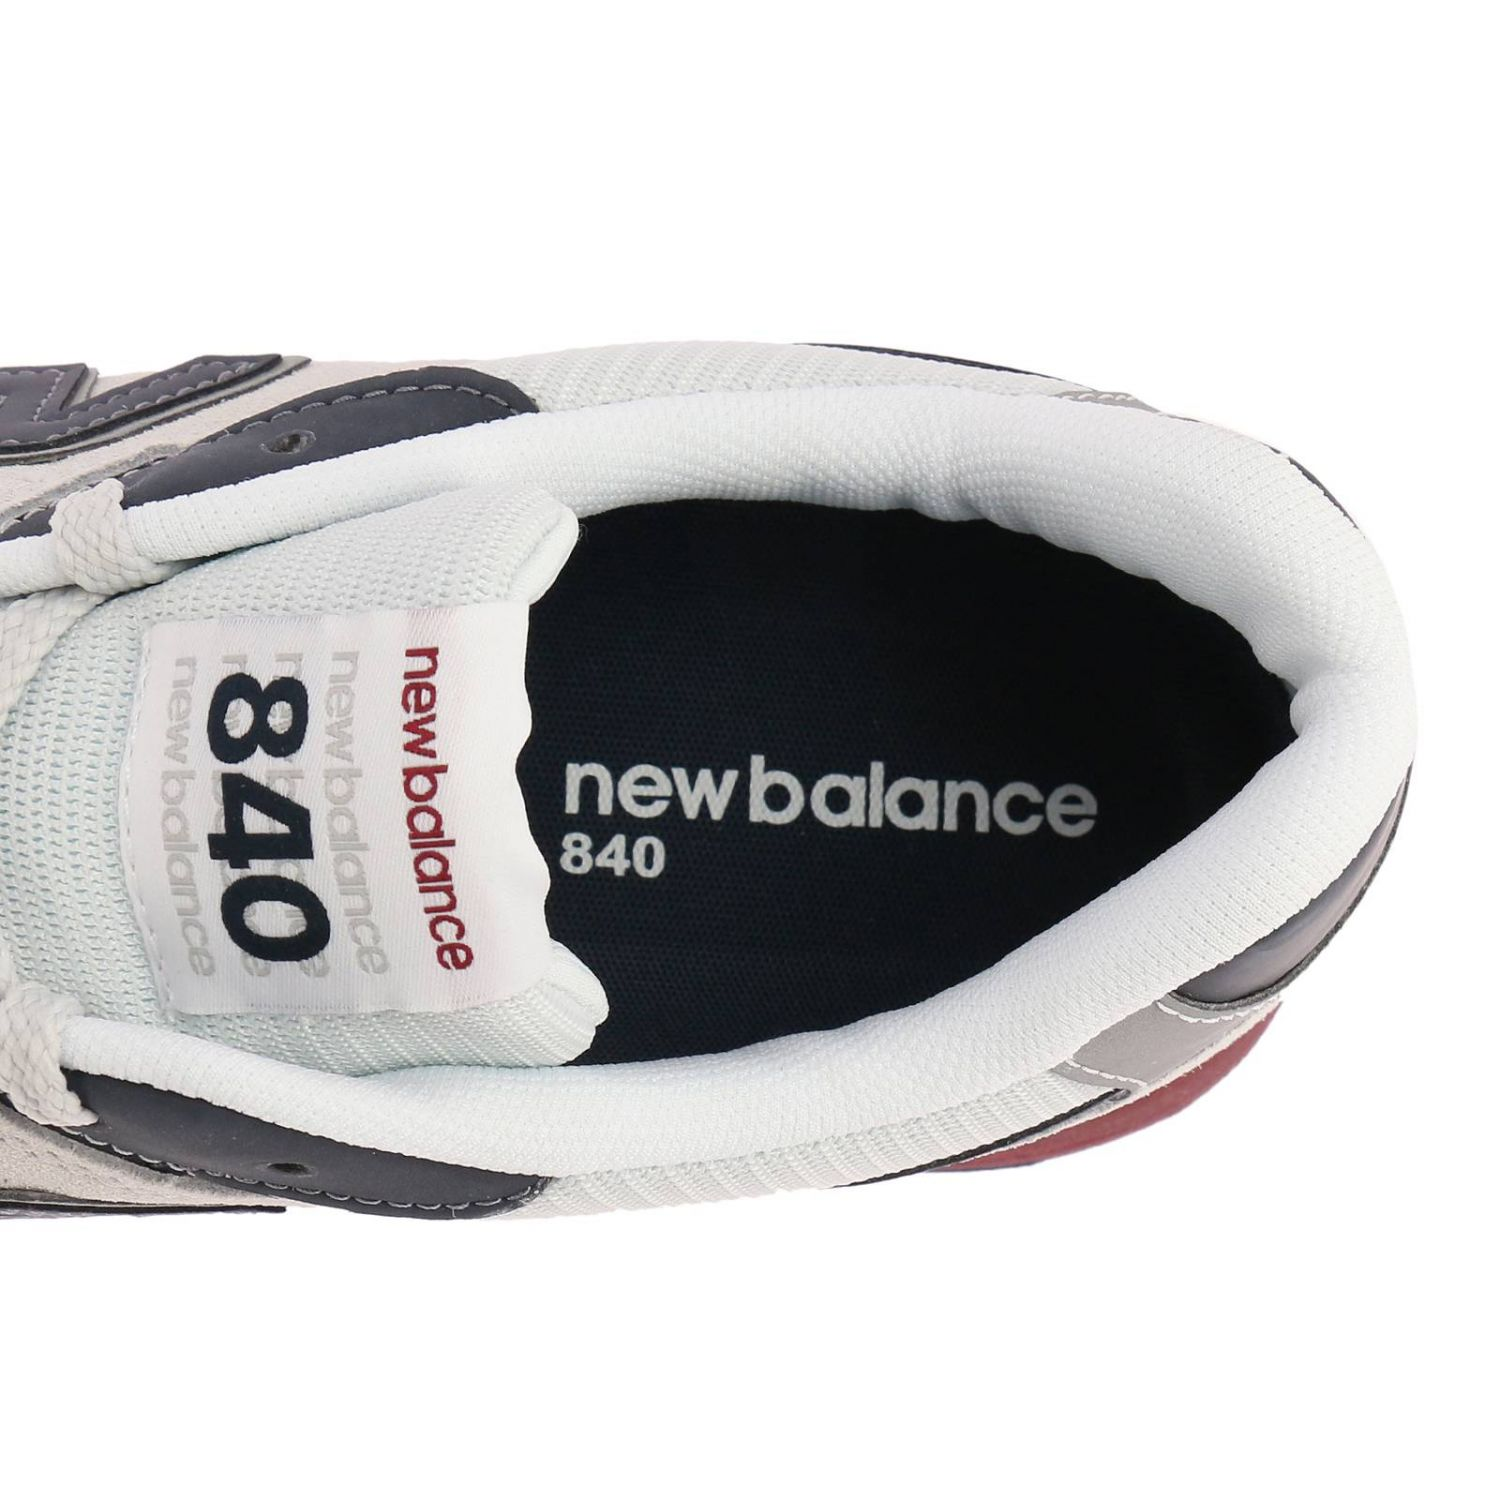 Trainers New Balance: Sneakers men New Balance white 3